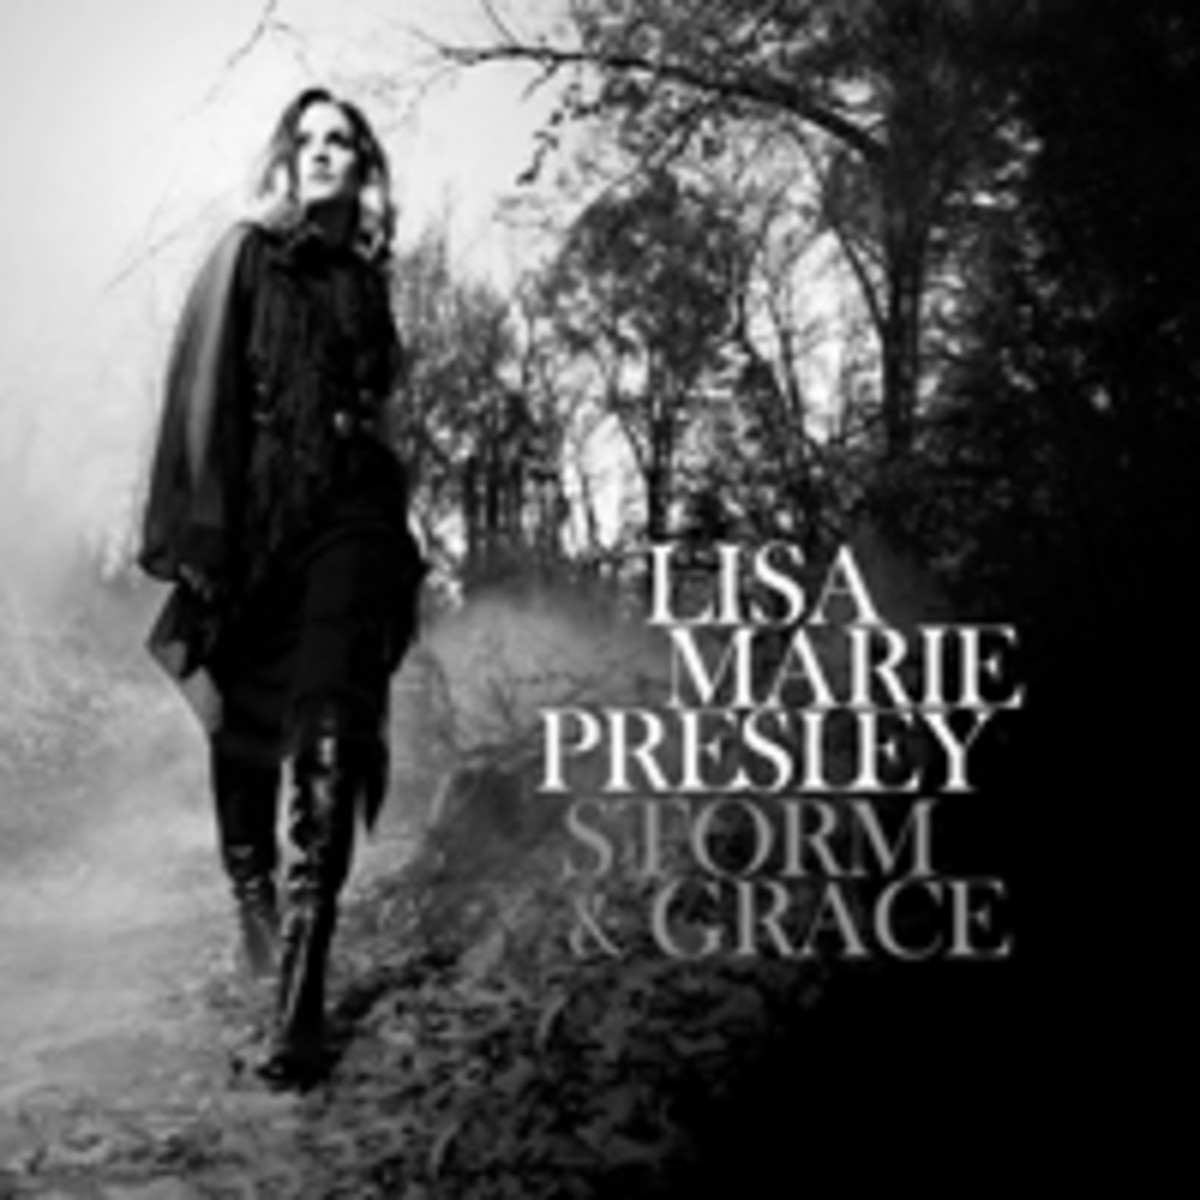 Lisa Marie Presley Storm and Grace